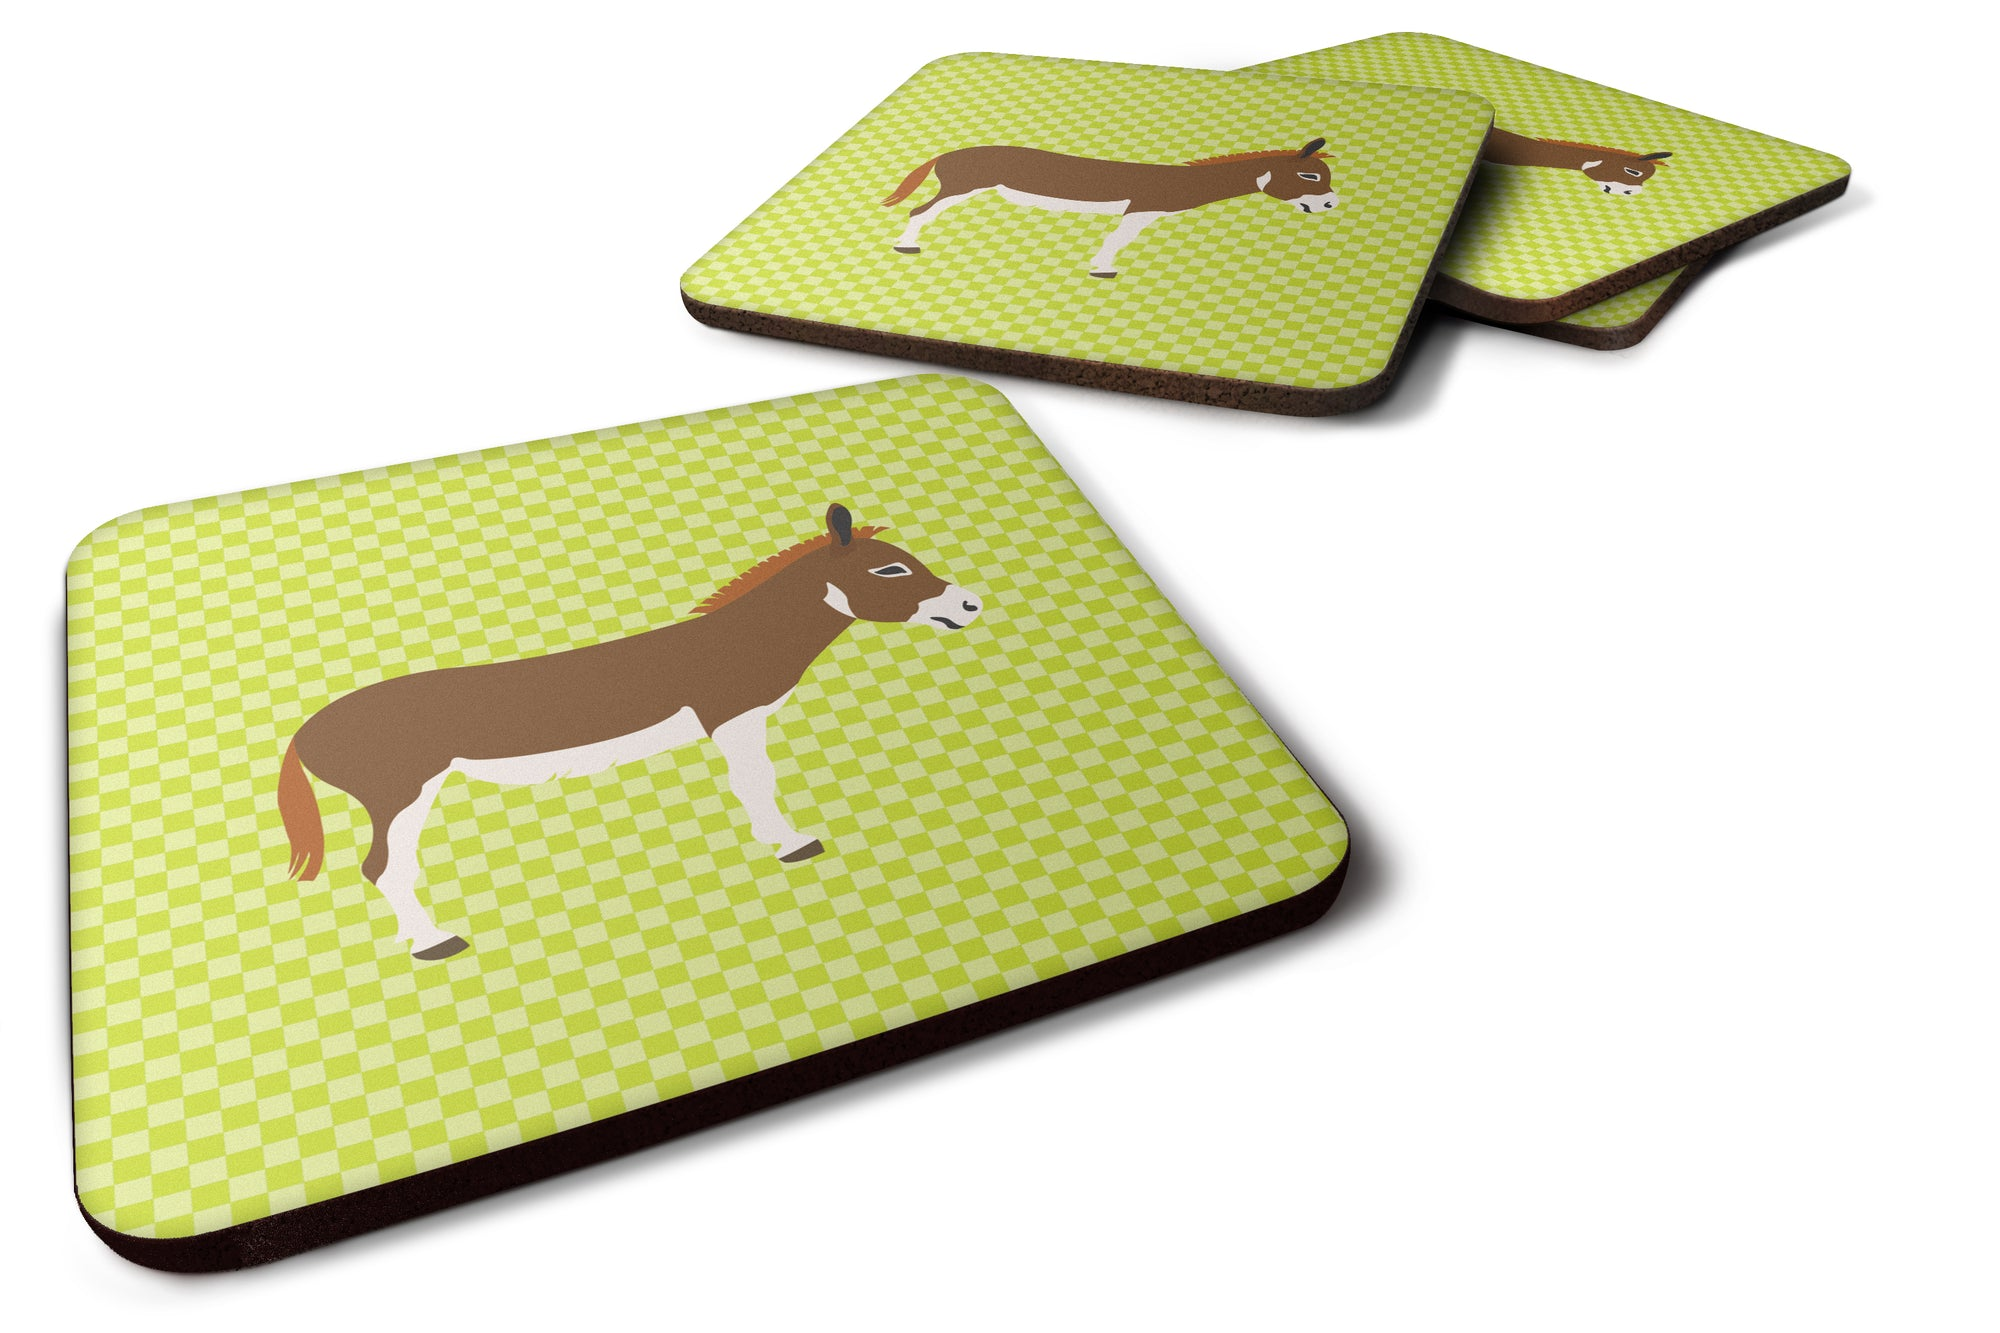 Miniature Mediterranian Donkey Green Foam Coaster Set of 4 BB7673FC by Caroline's Treasures